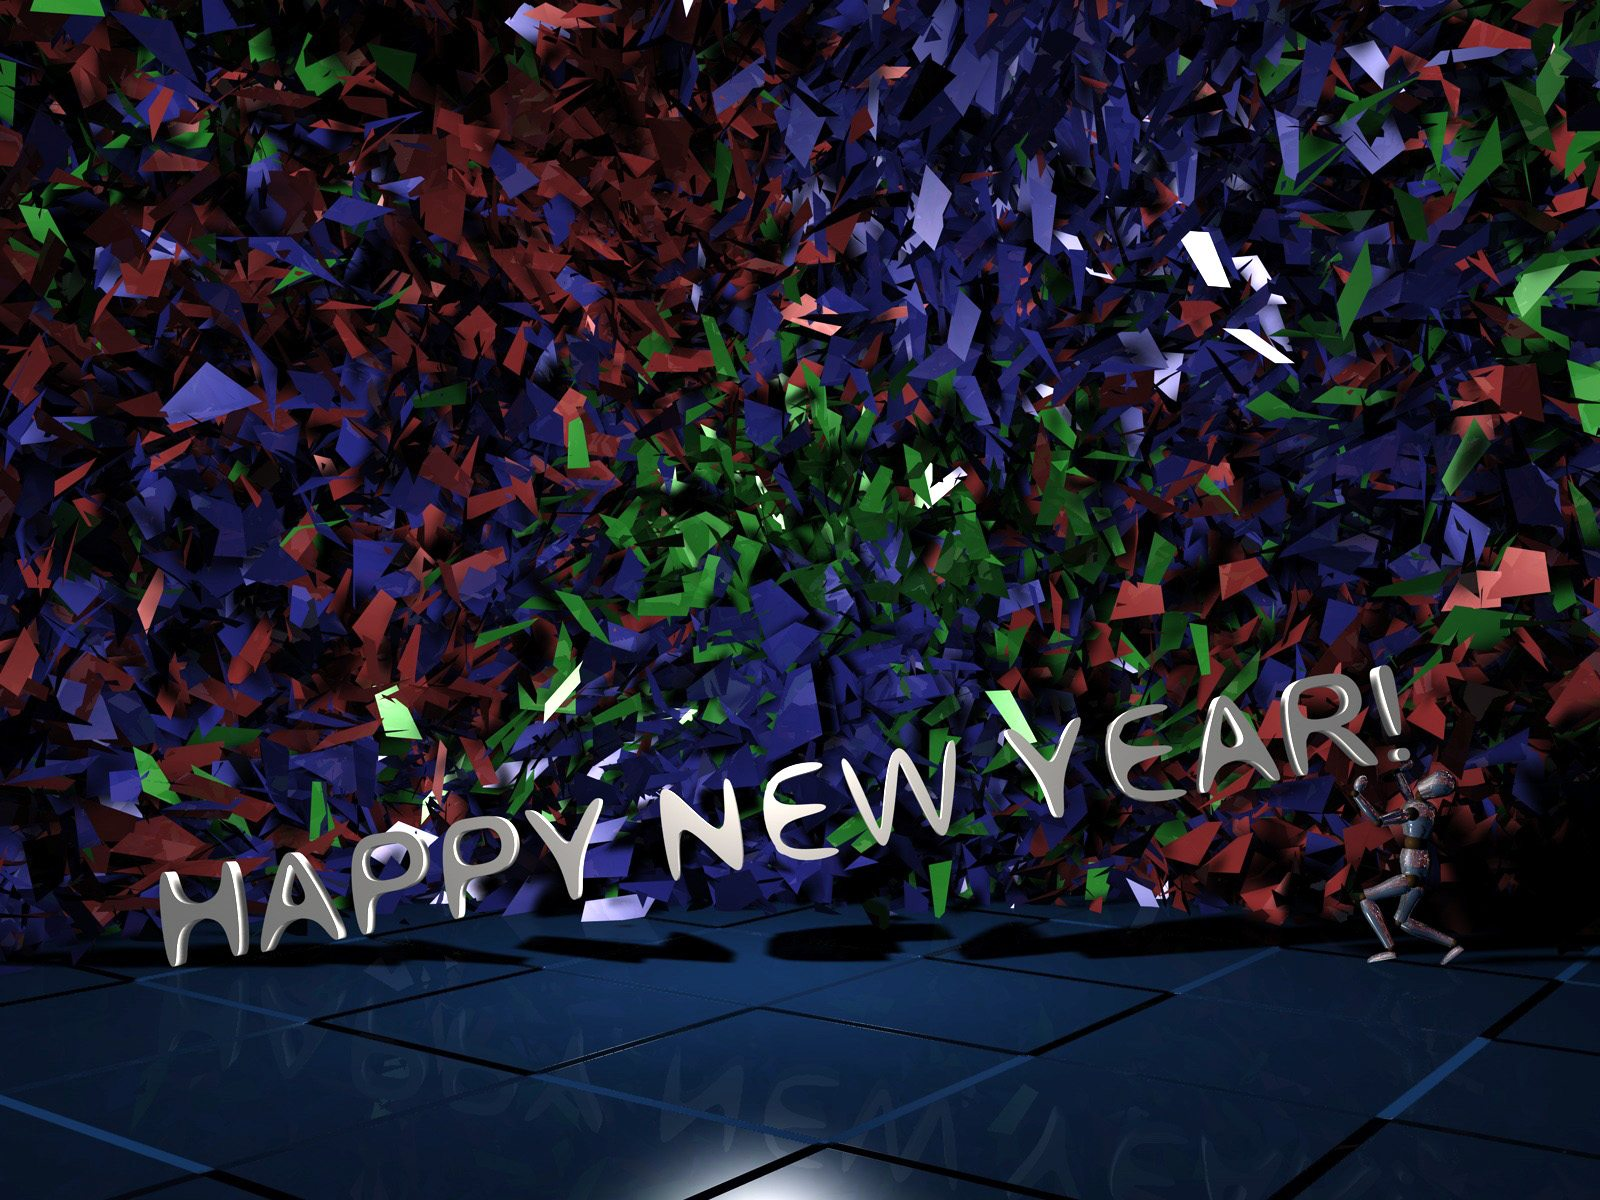 http://4.bp.blogspot.com/-04GC8-Dkbpk/UN79N38U5OI/AAAAAAAAEDk/8dae9WtCKUA/s1600/2013-new-year-hd-wallpaper-5.jpg